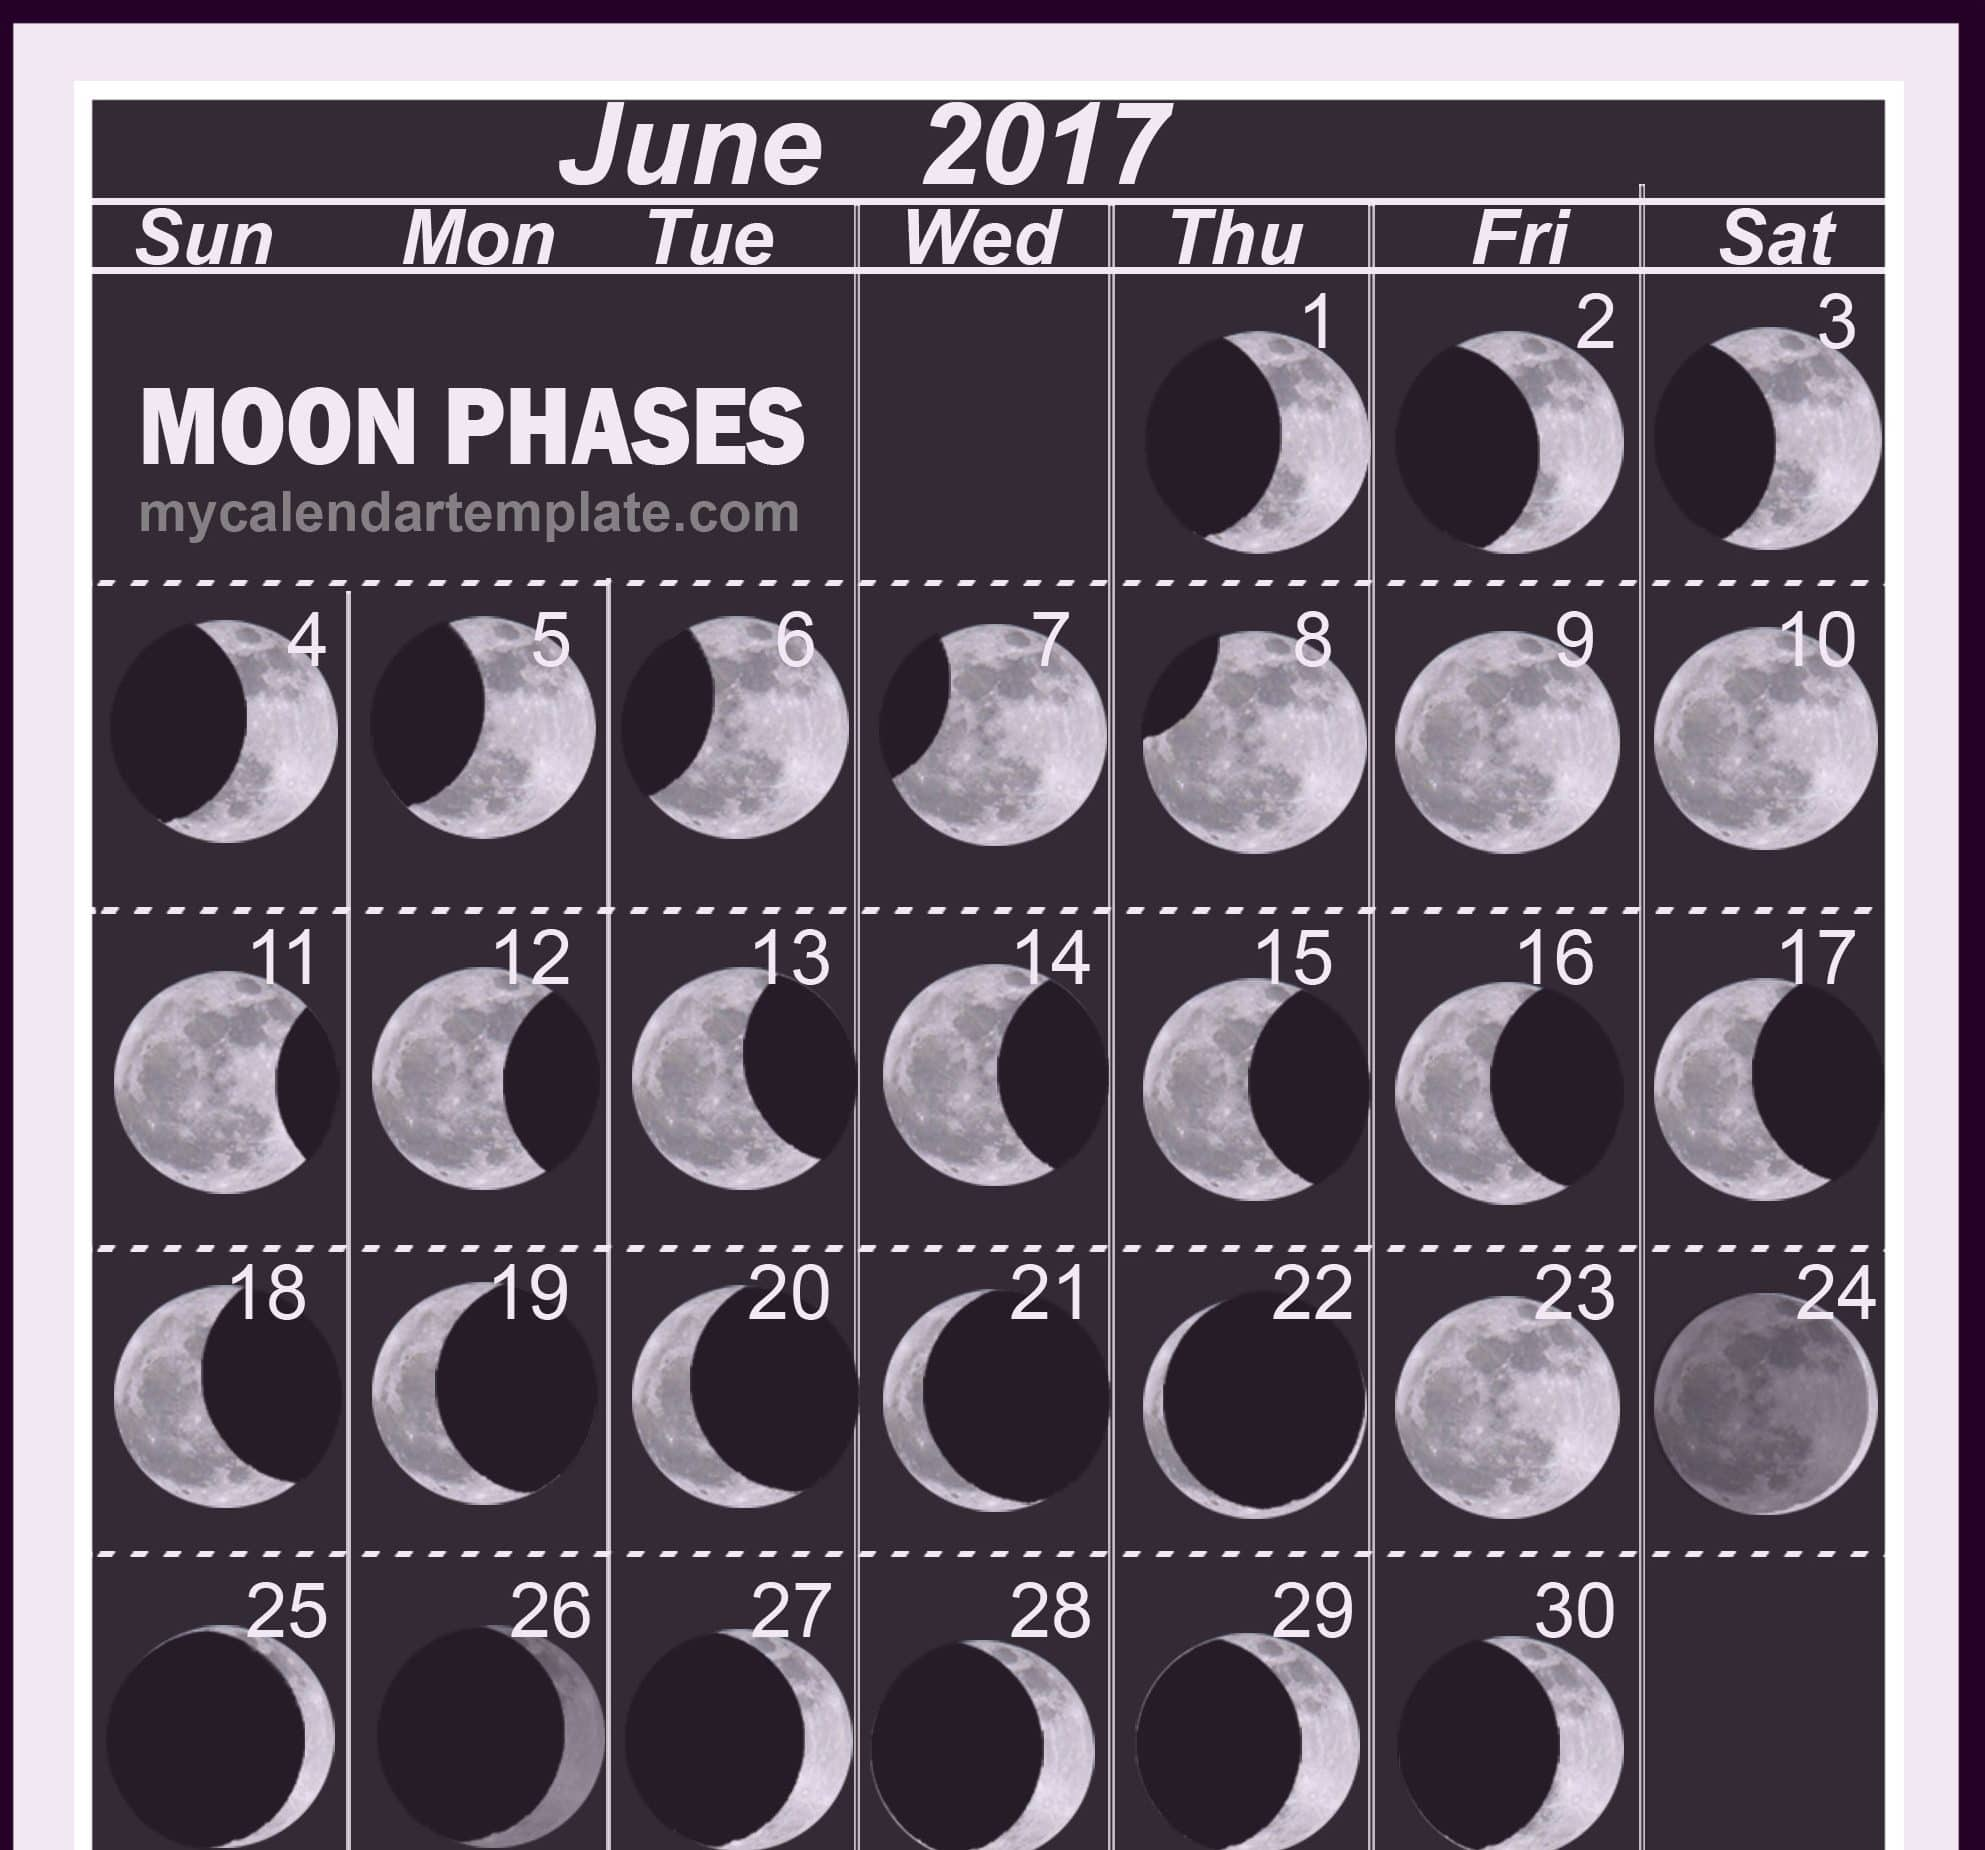 Monthly June 2017 Lunar Calendar Image